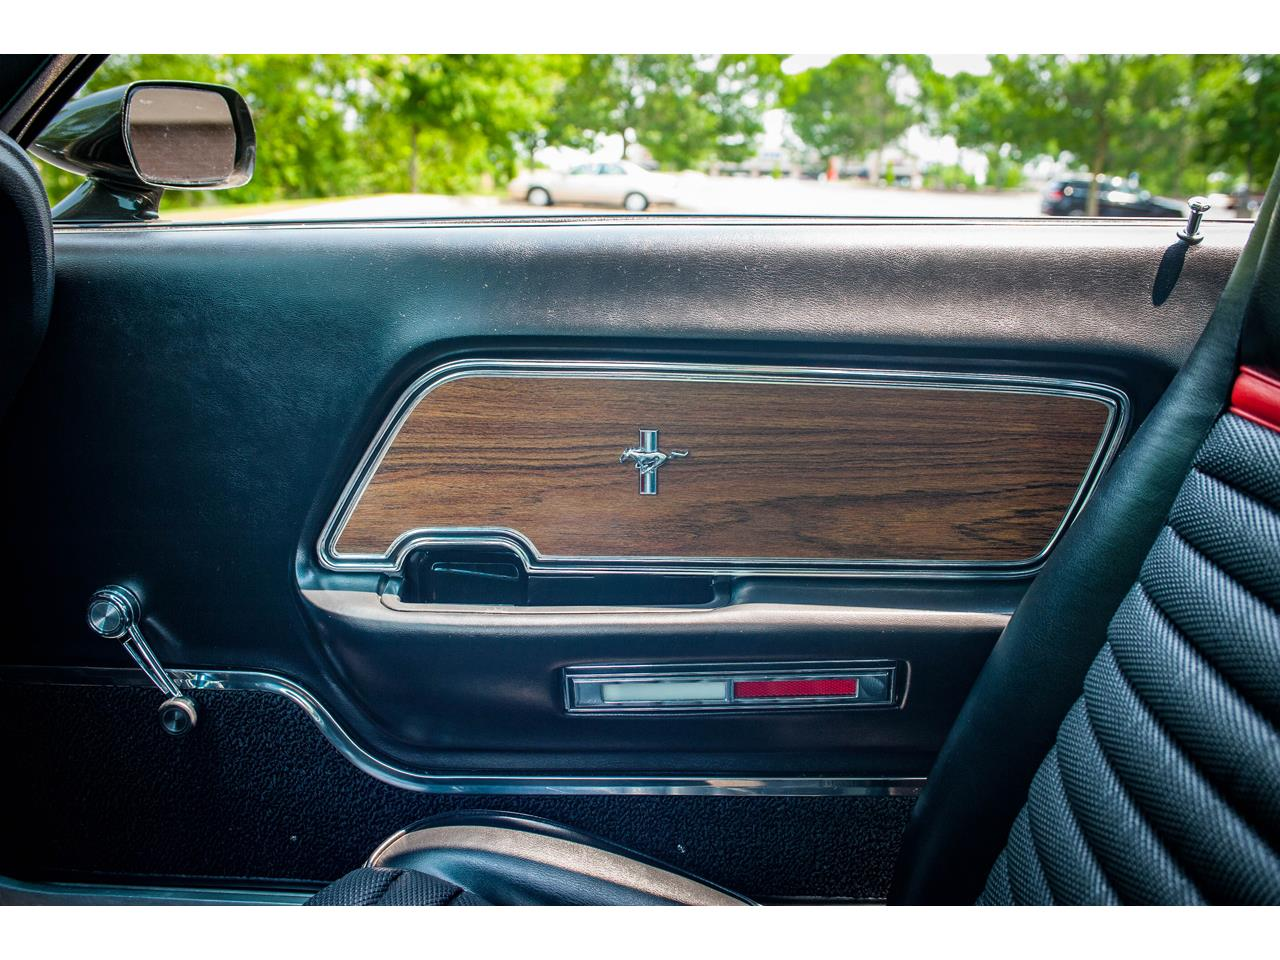 Large Picture of 1969 Ford Mustang - $97,500.00 Offered by Gateway Classic Cars - St. Louis - QBA2